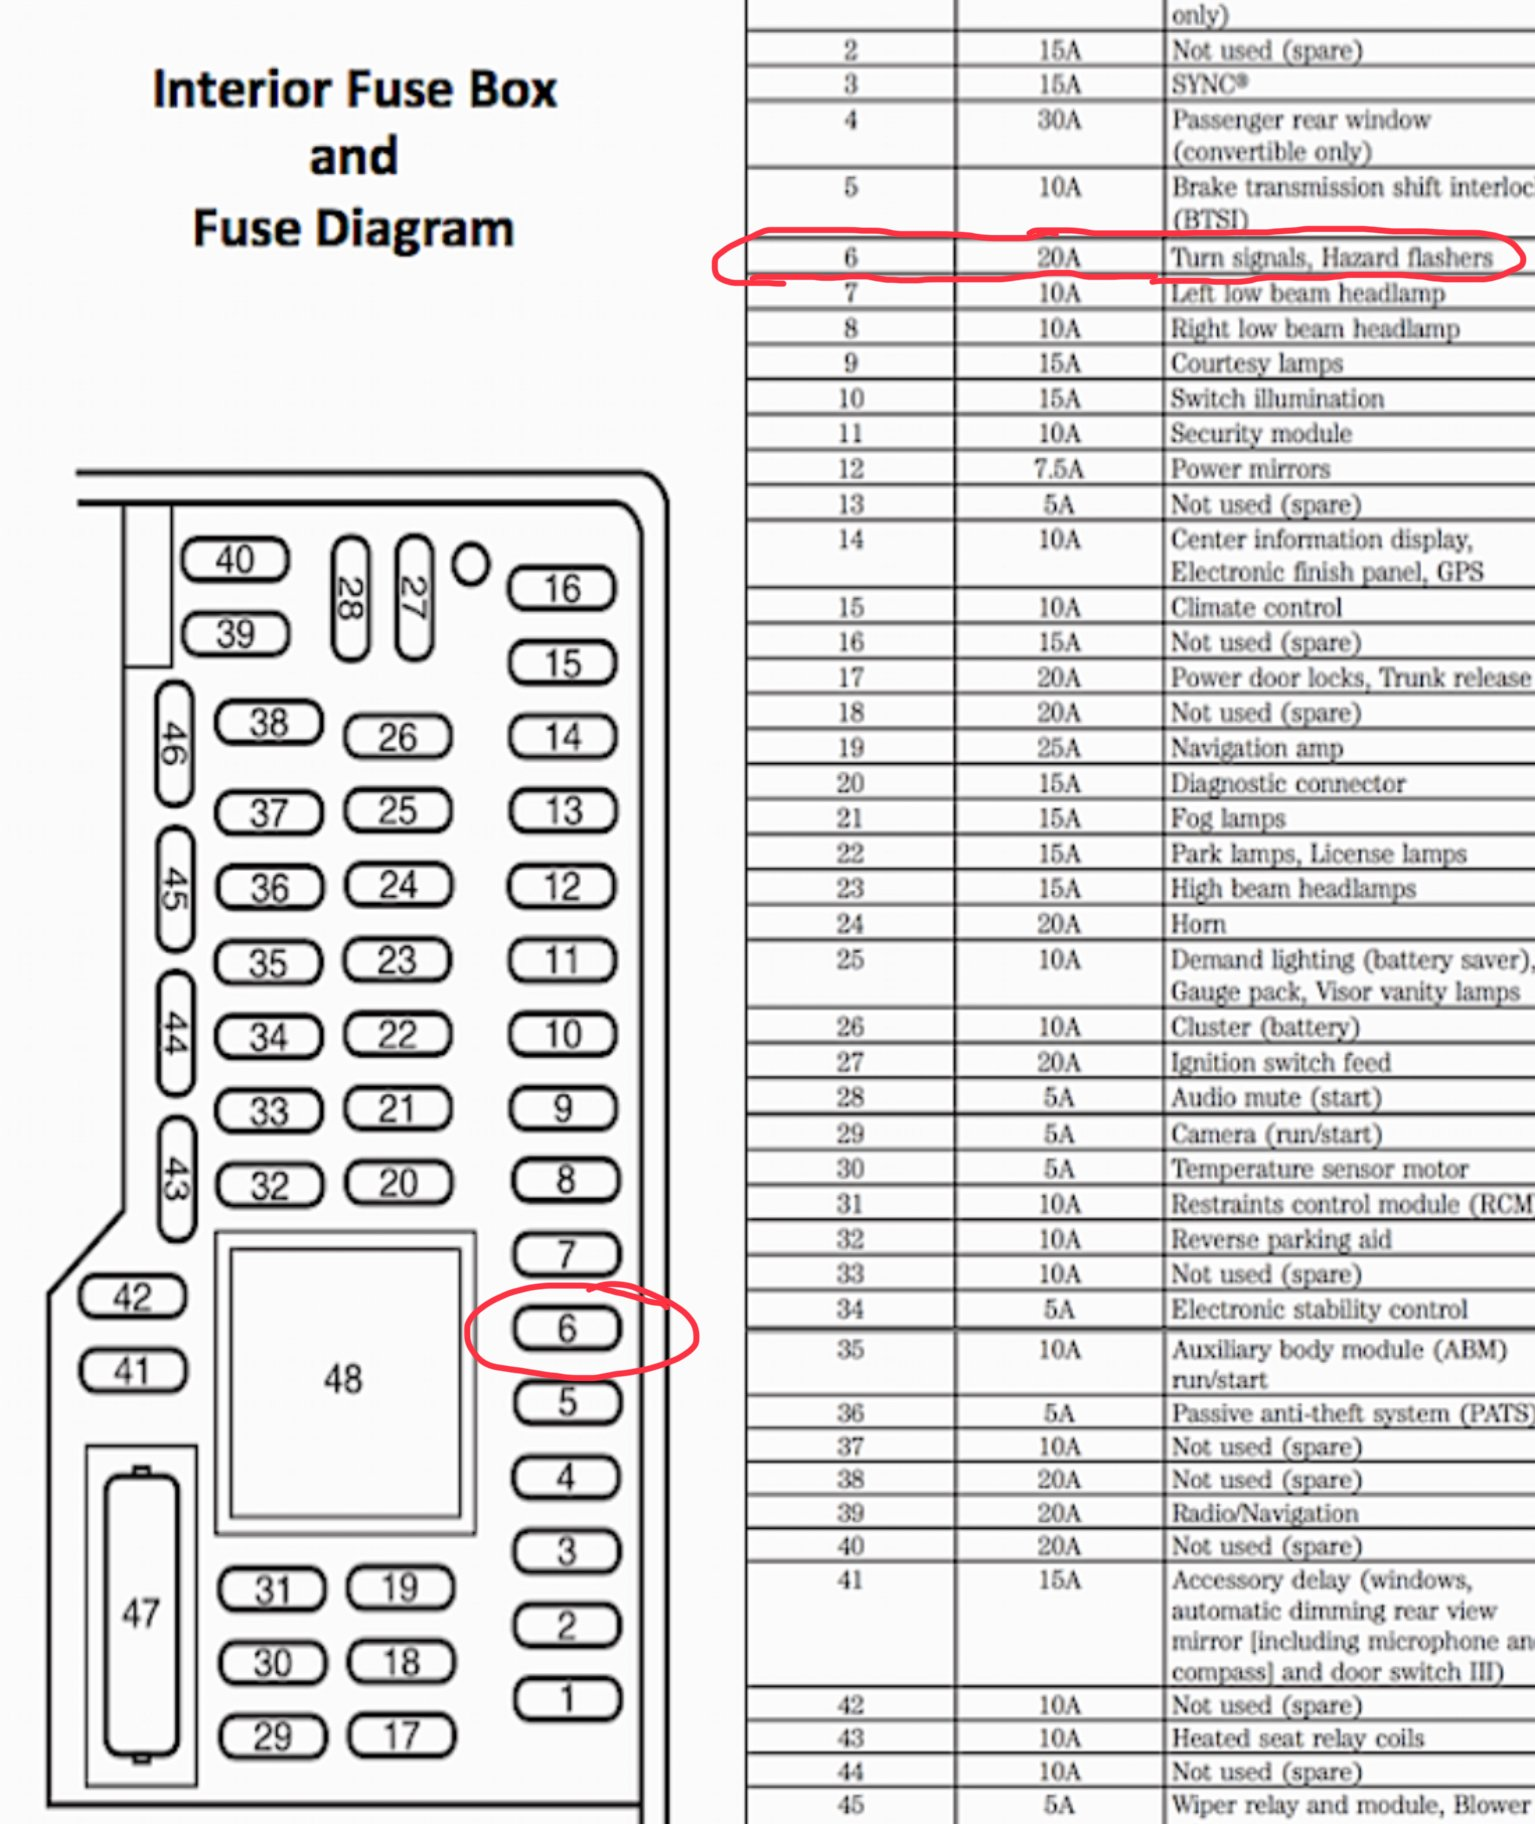 Ford Flasher Relay Wiring Diagram from www.fordgt500.com